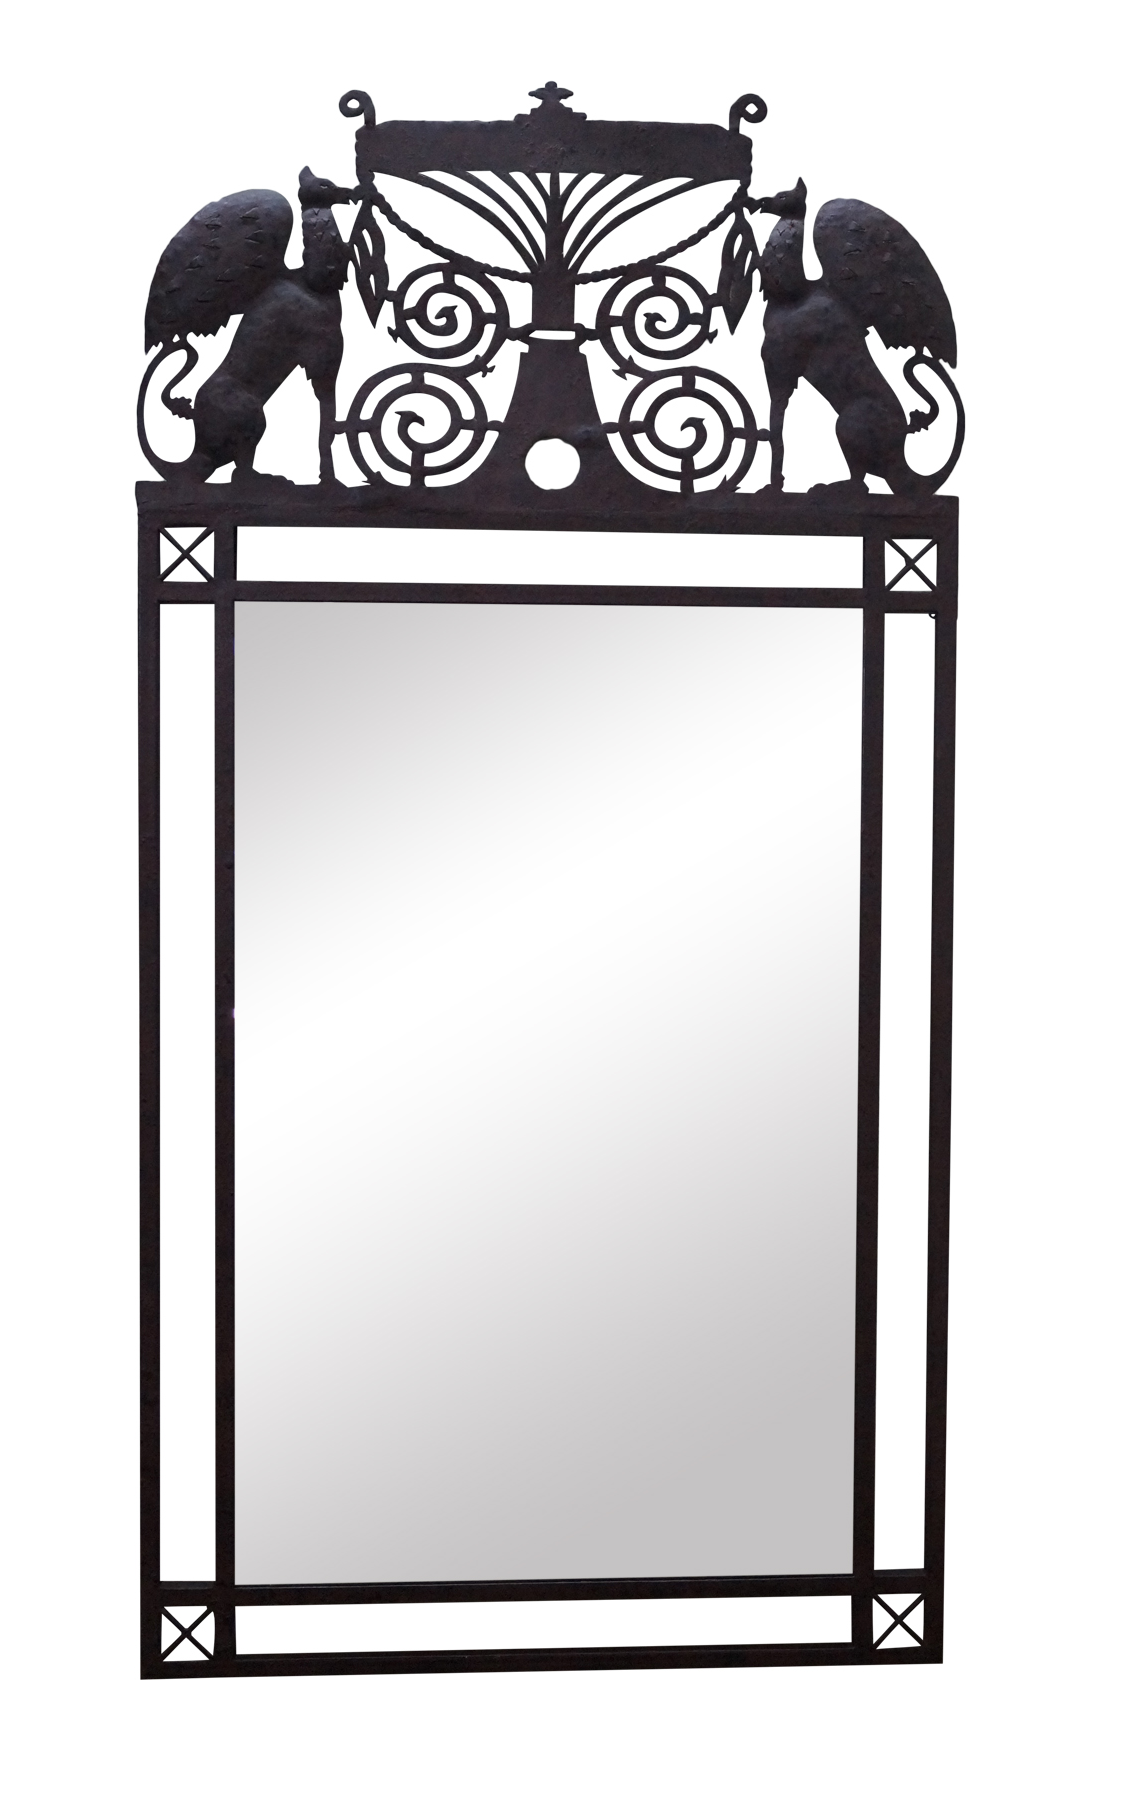 Vintage used gothic wall mirrors chairish medieval gothic custom iron frame wall mirror amipublicfo Gallery